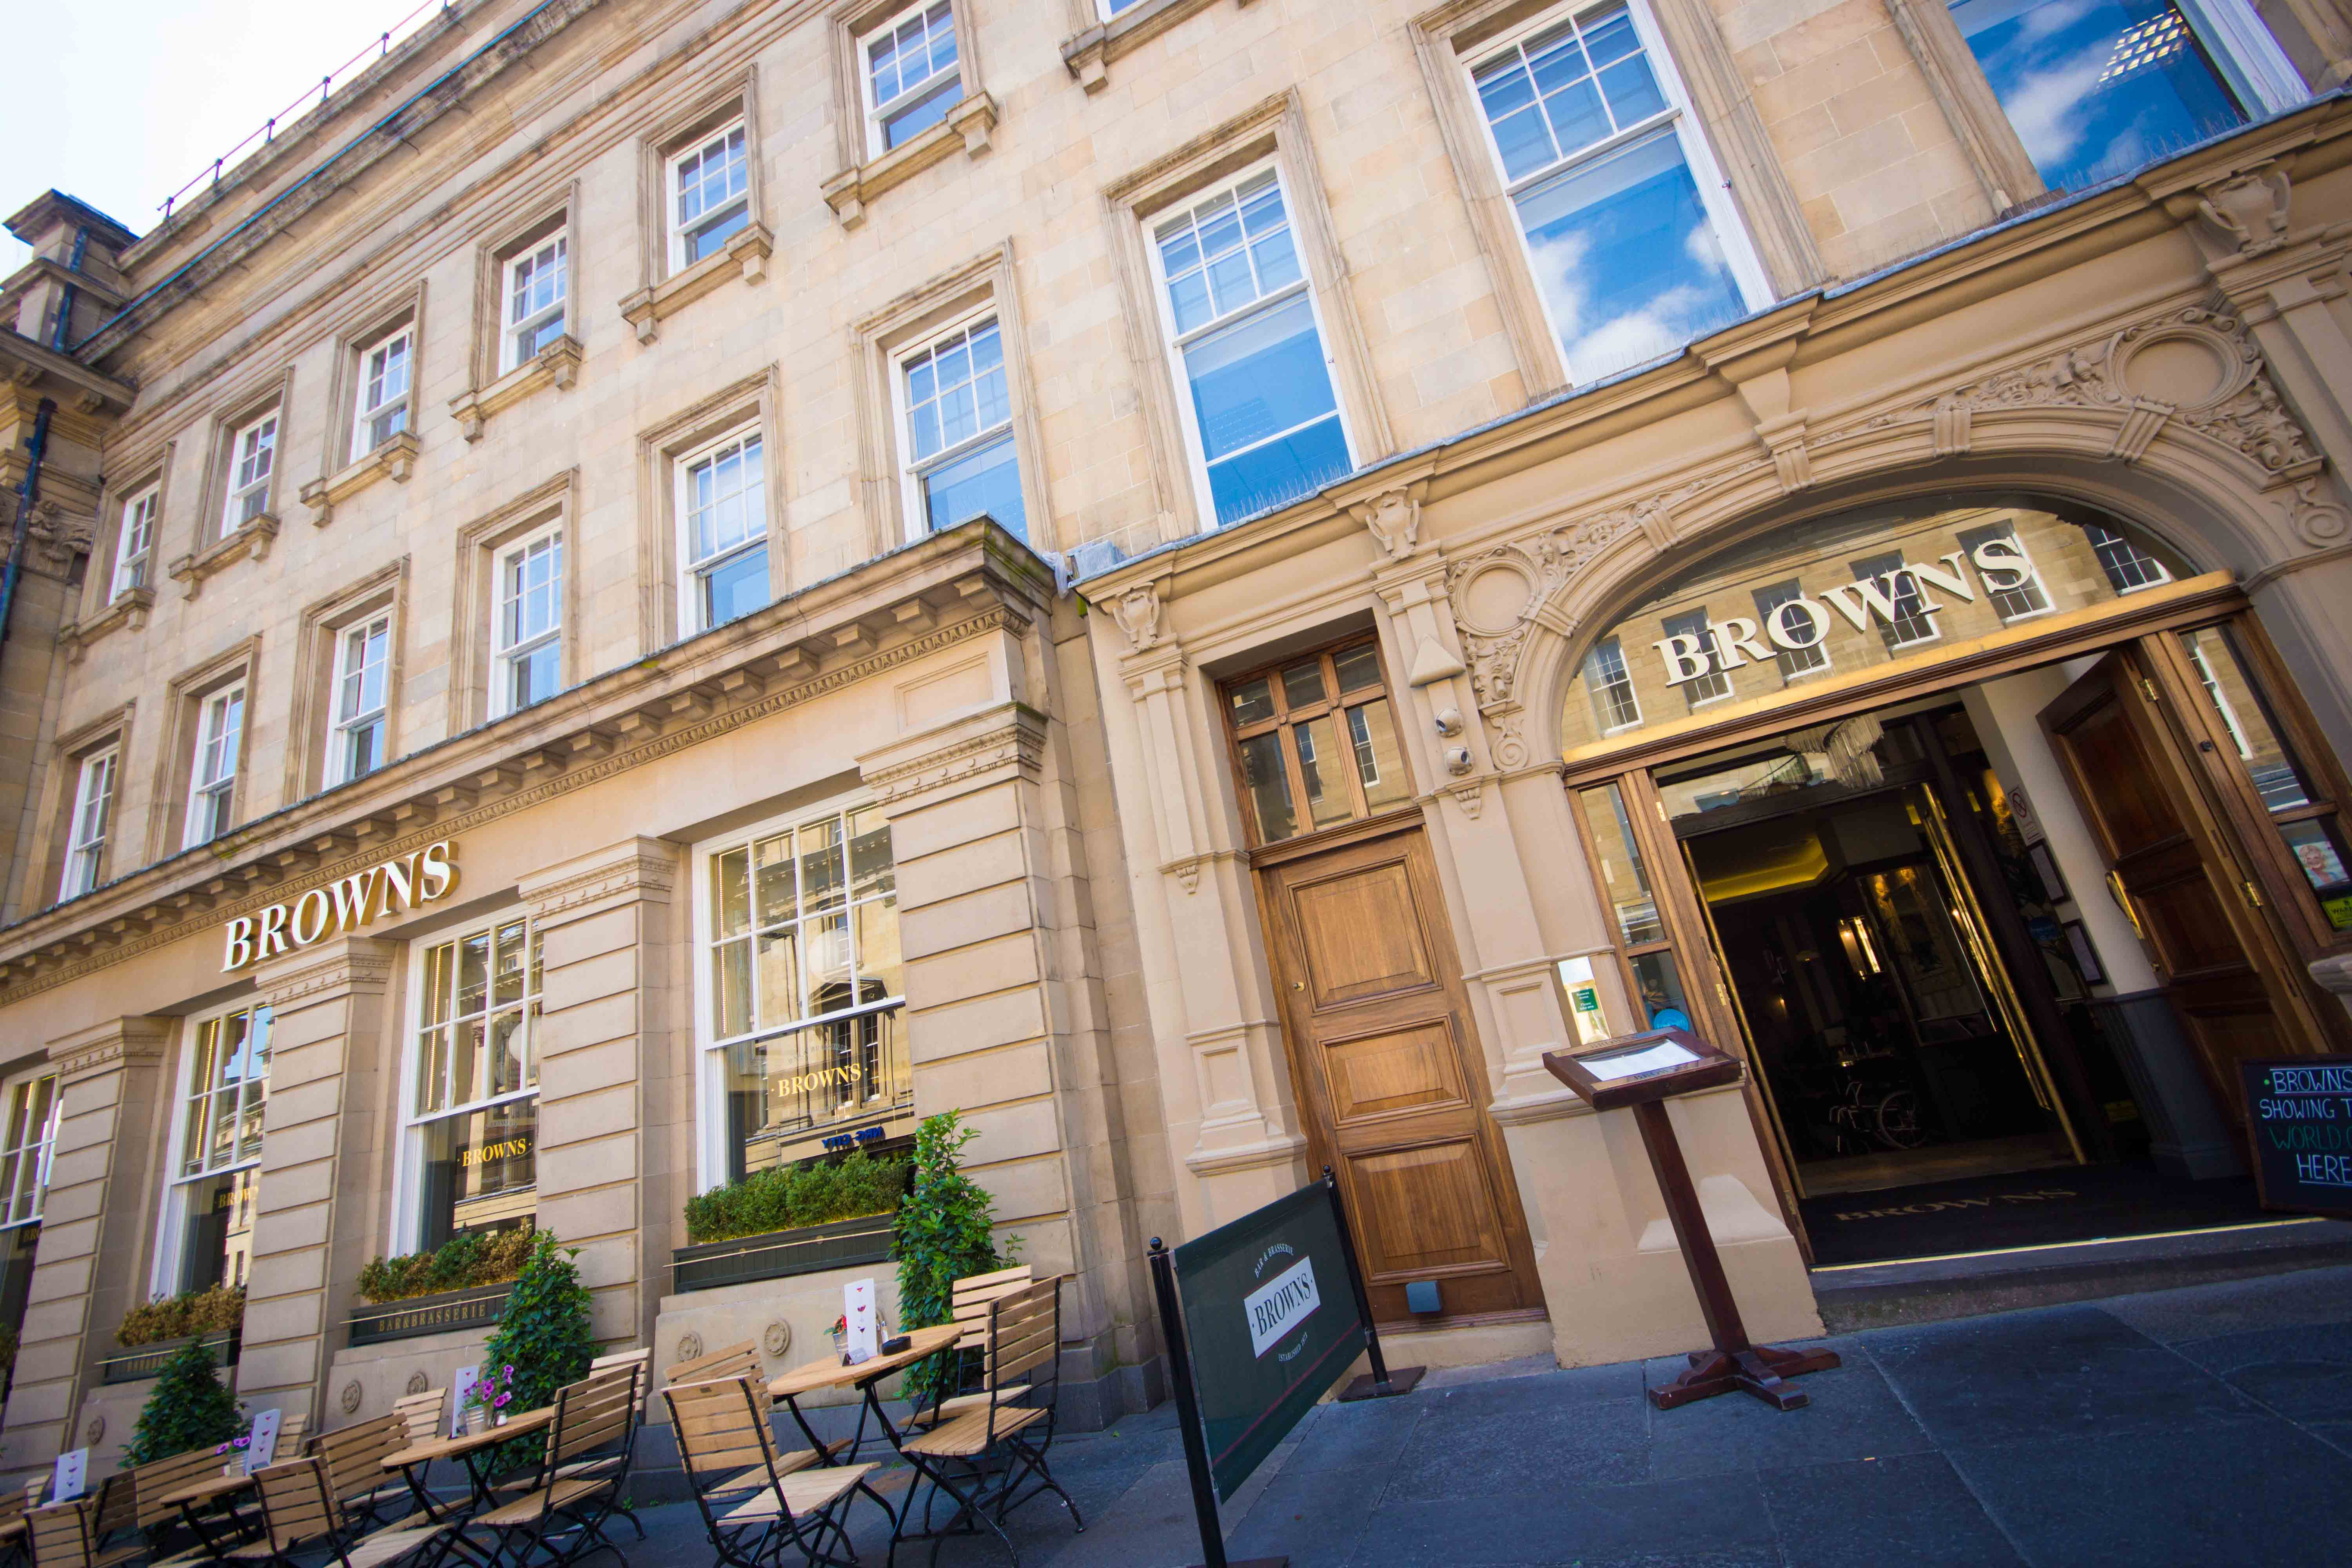 Browns Brasserie & Bar - Newcastle - Tyne & Wear